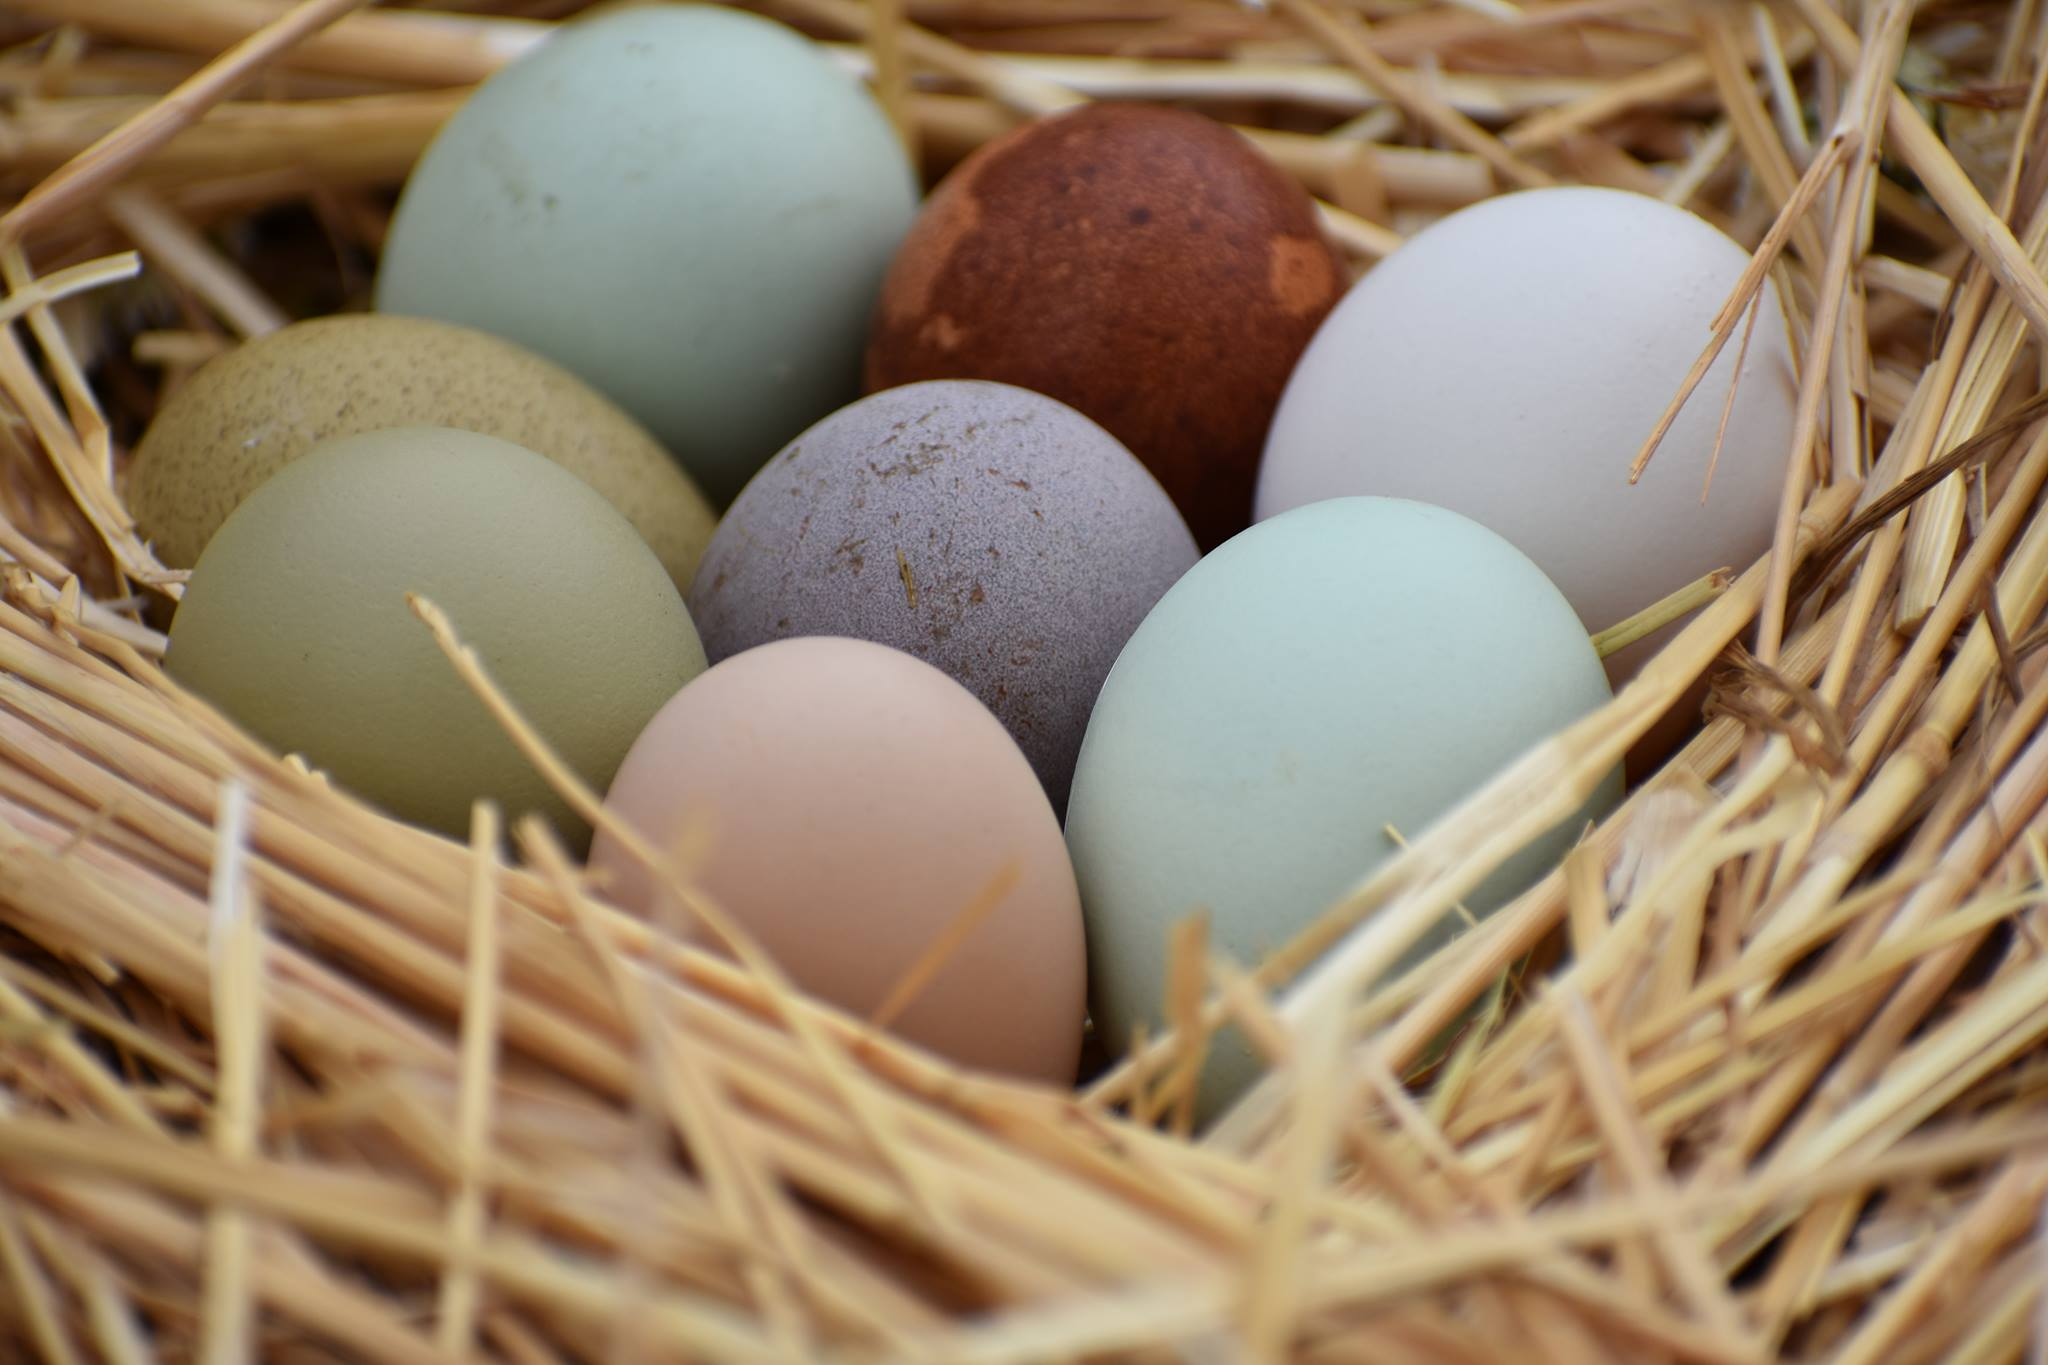 Natural Colored Eggs.jpg